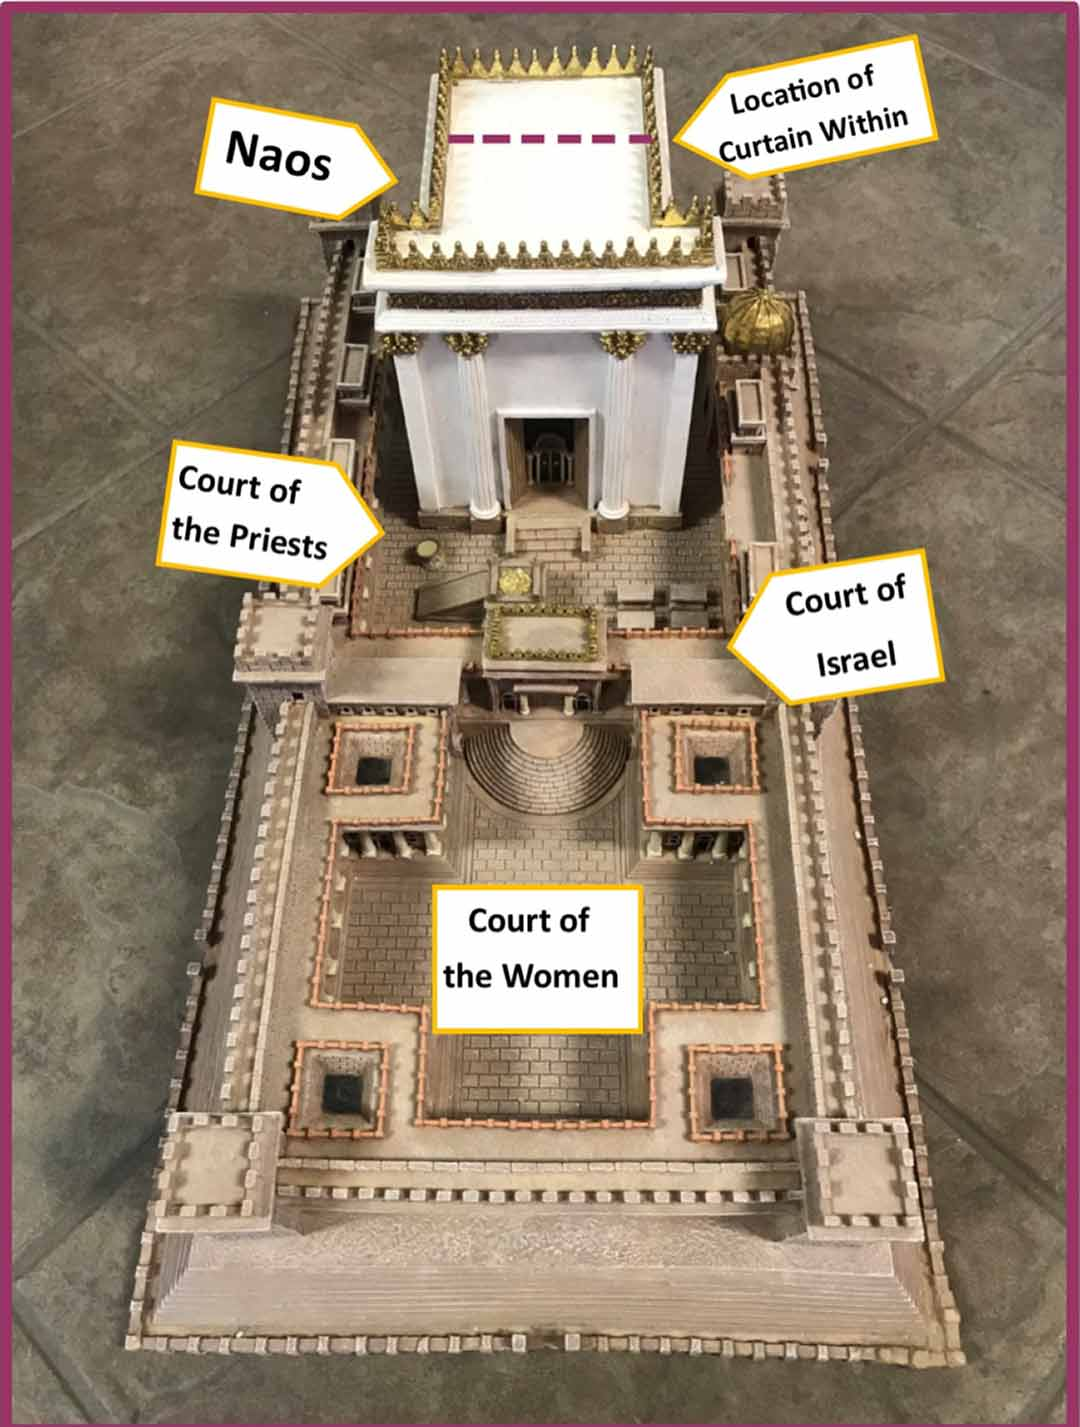 A model showing the different areas of Herod's Temple in Jerusalem